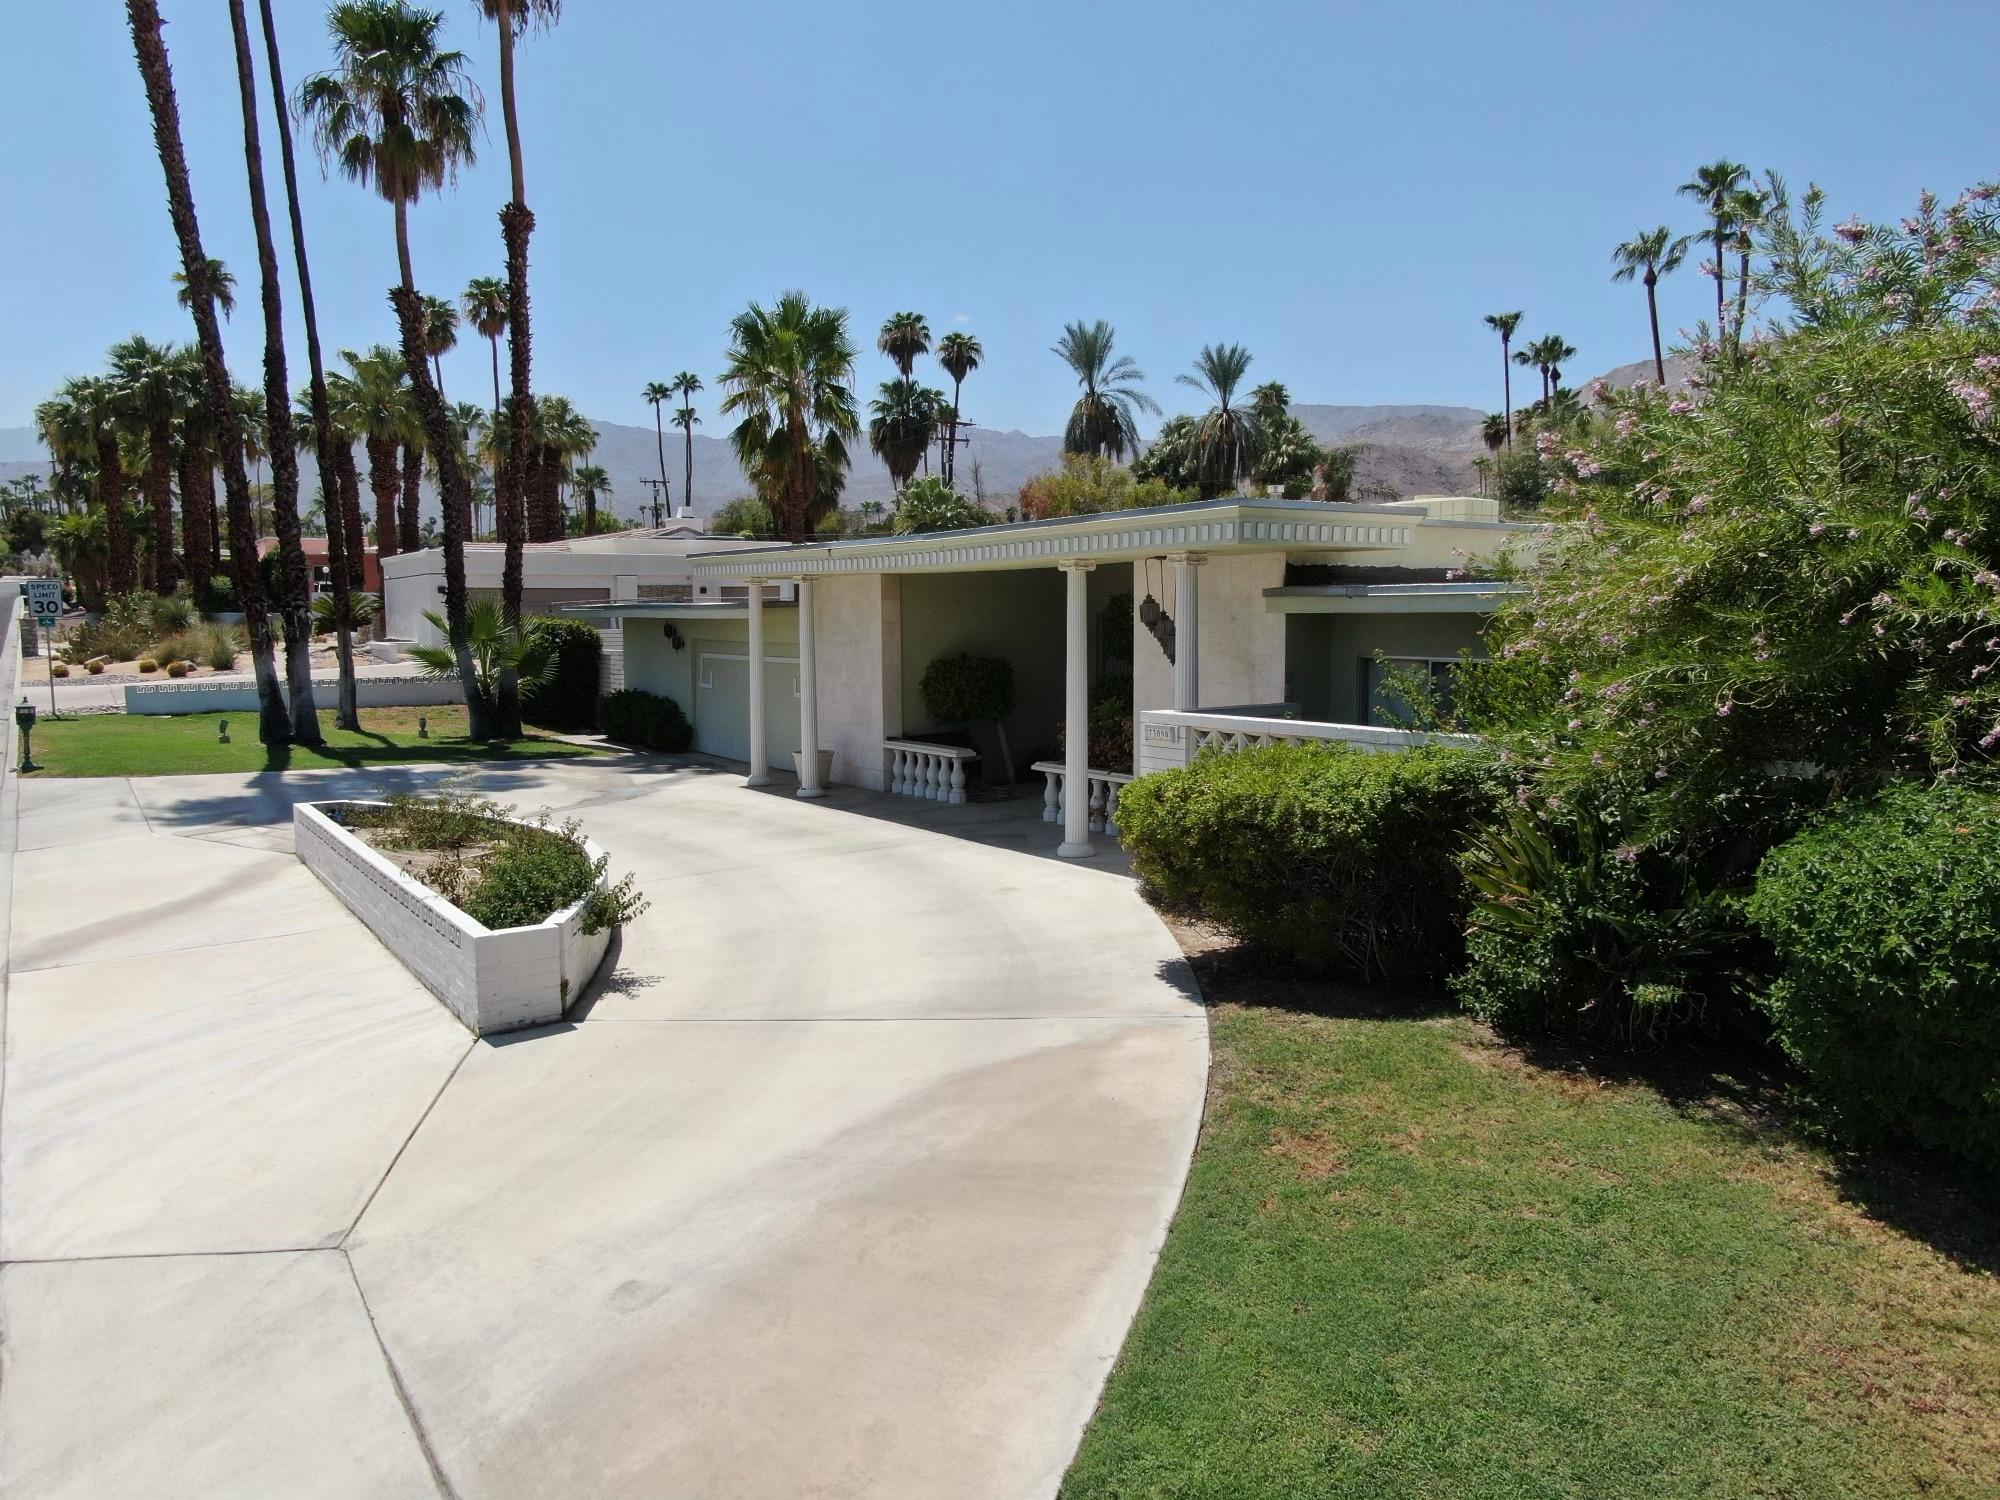 Here's a rare opportunity in one of South Palm Desert's best areas ready for a modern-day remodel! A later Mid-Century home designed by Charles Dubois, verified by Palm Desert Historical Society. This rare opportunity has unlimited potential, a great home, vacation home, and within walking distance to El Paseo. A truly unique architectural home in South Palm Desert a Must see!